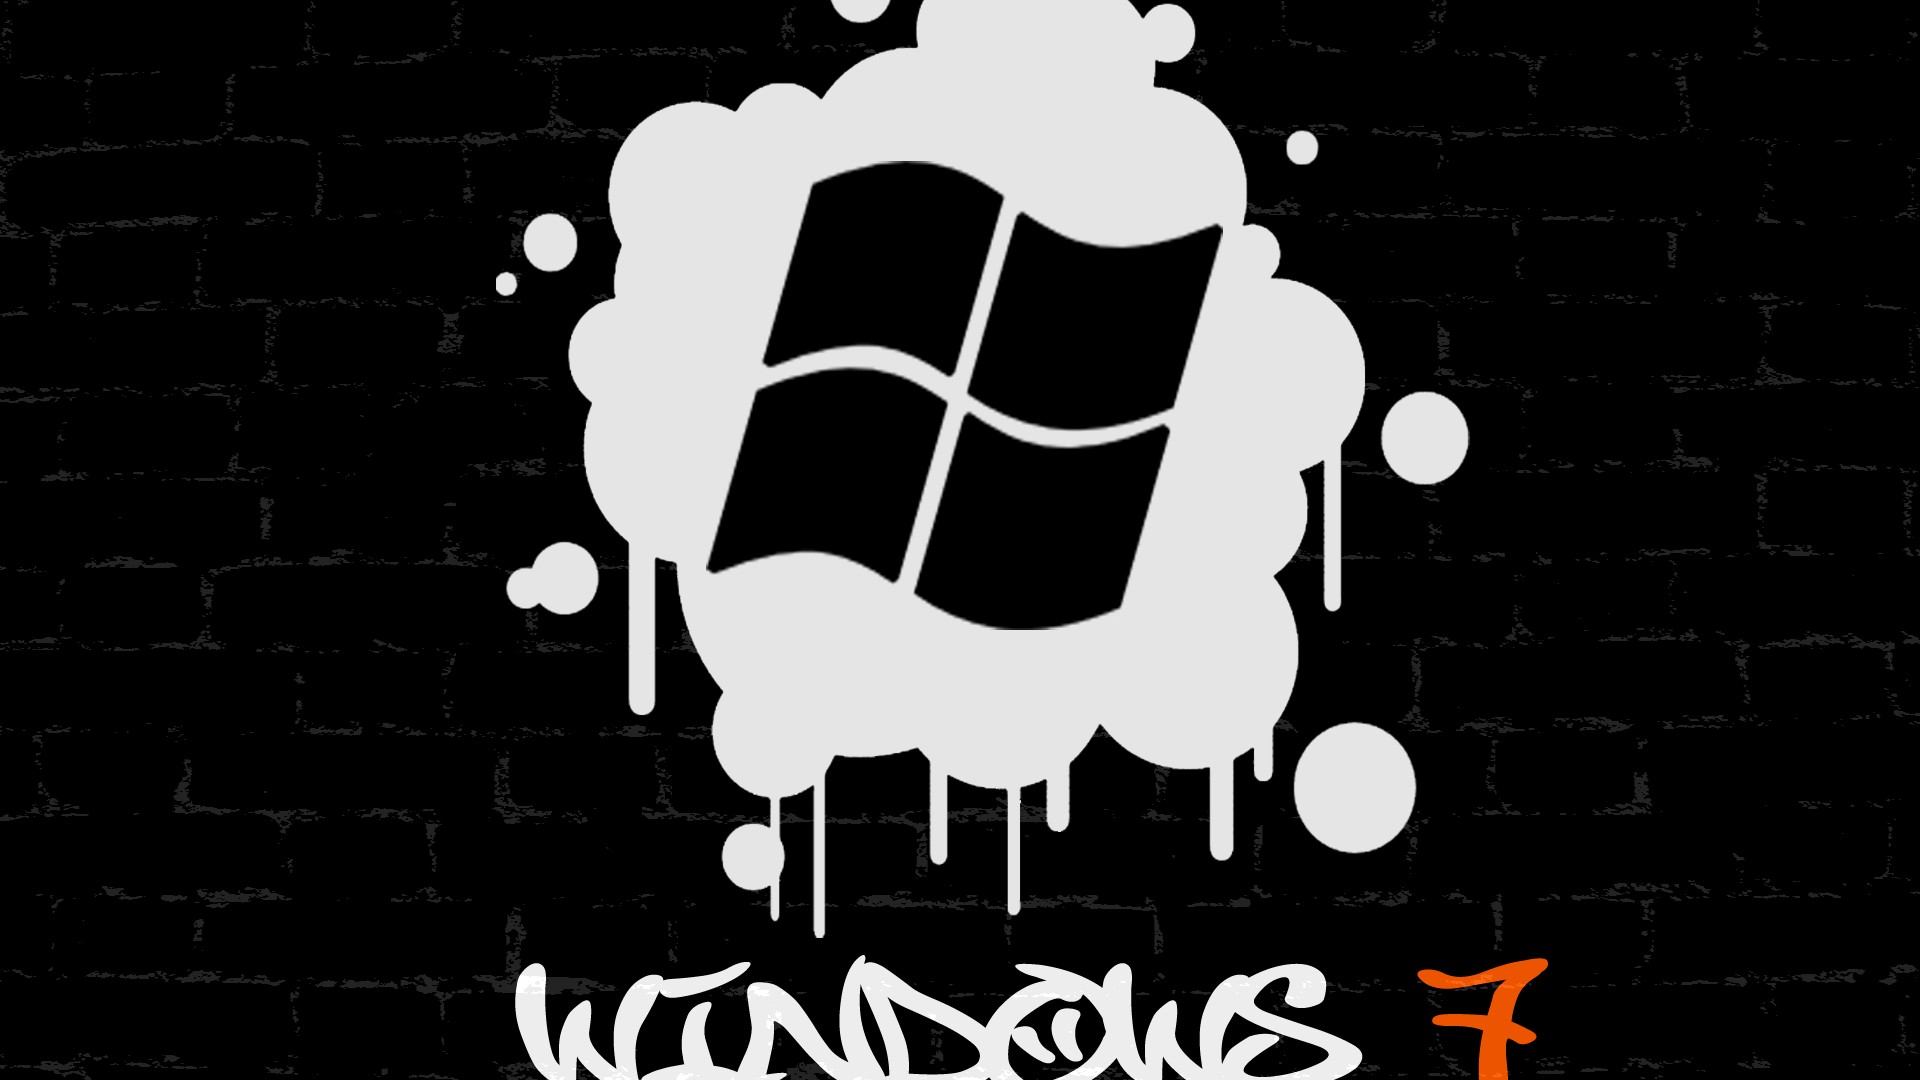 Cool Graffiti Wallpapers Hd Banksy Windows Hd Wallpapers